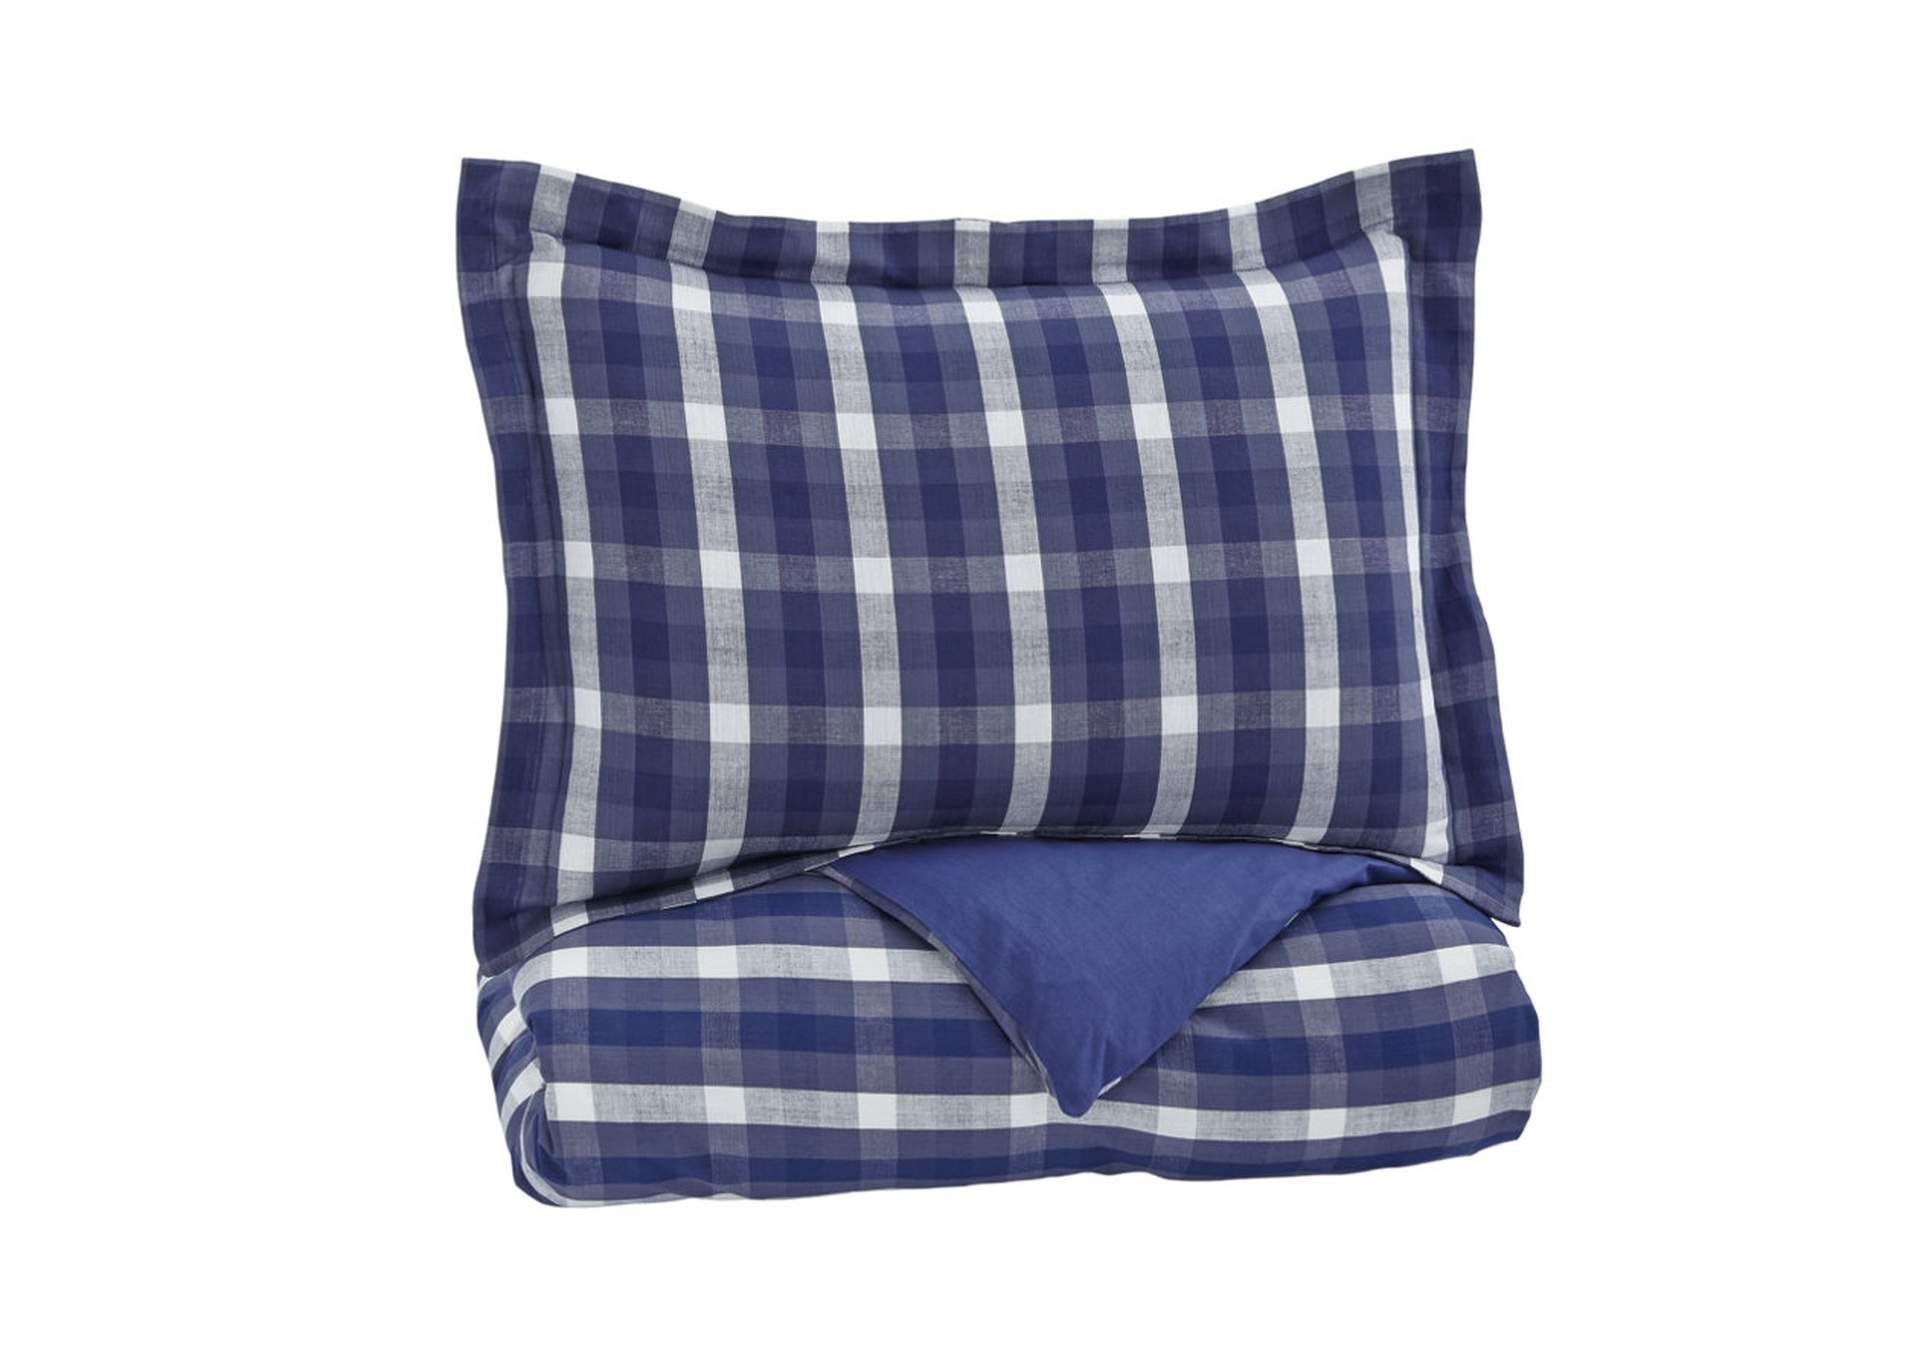 Baret Blue Twin Duvet Cover Set,Signature Design by Ashley